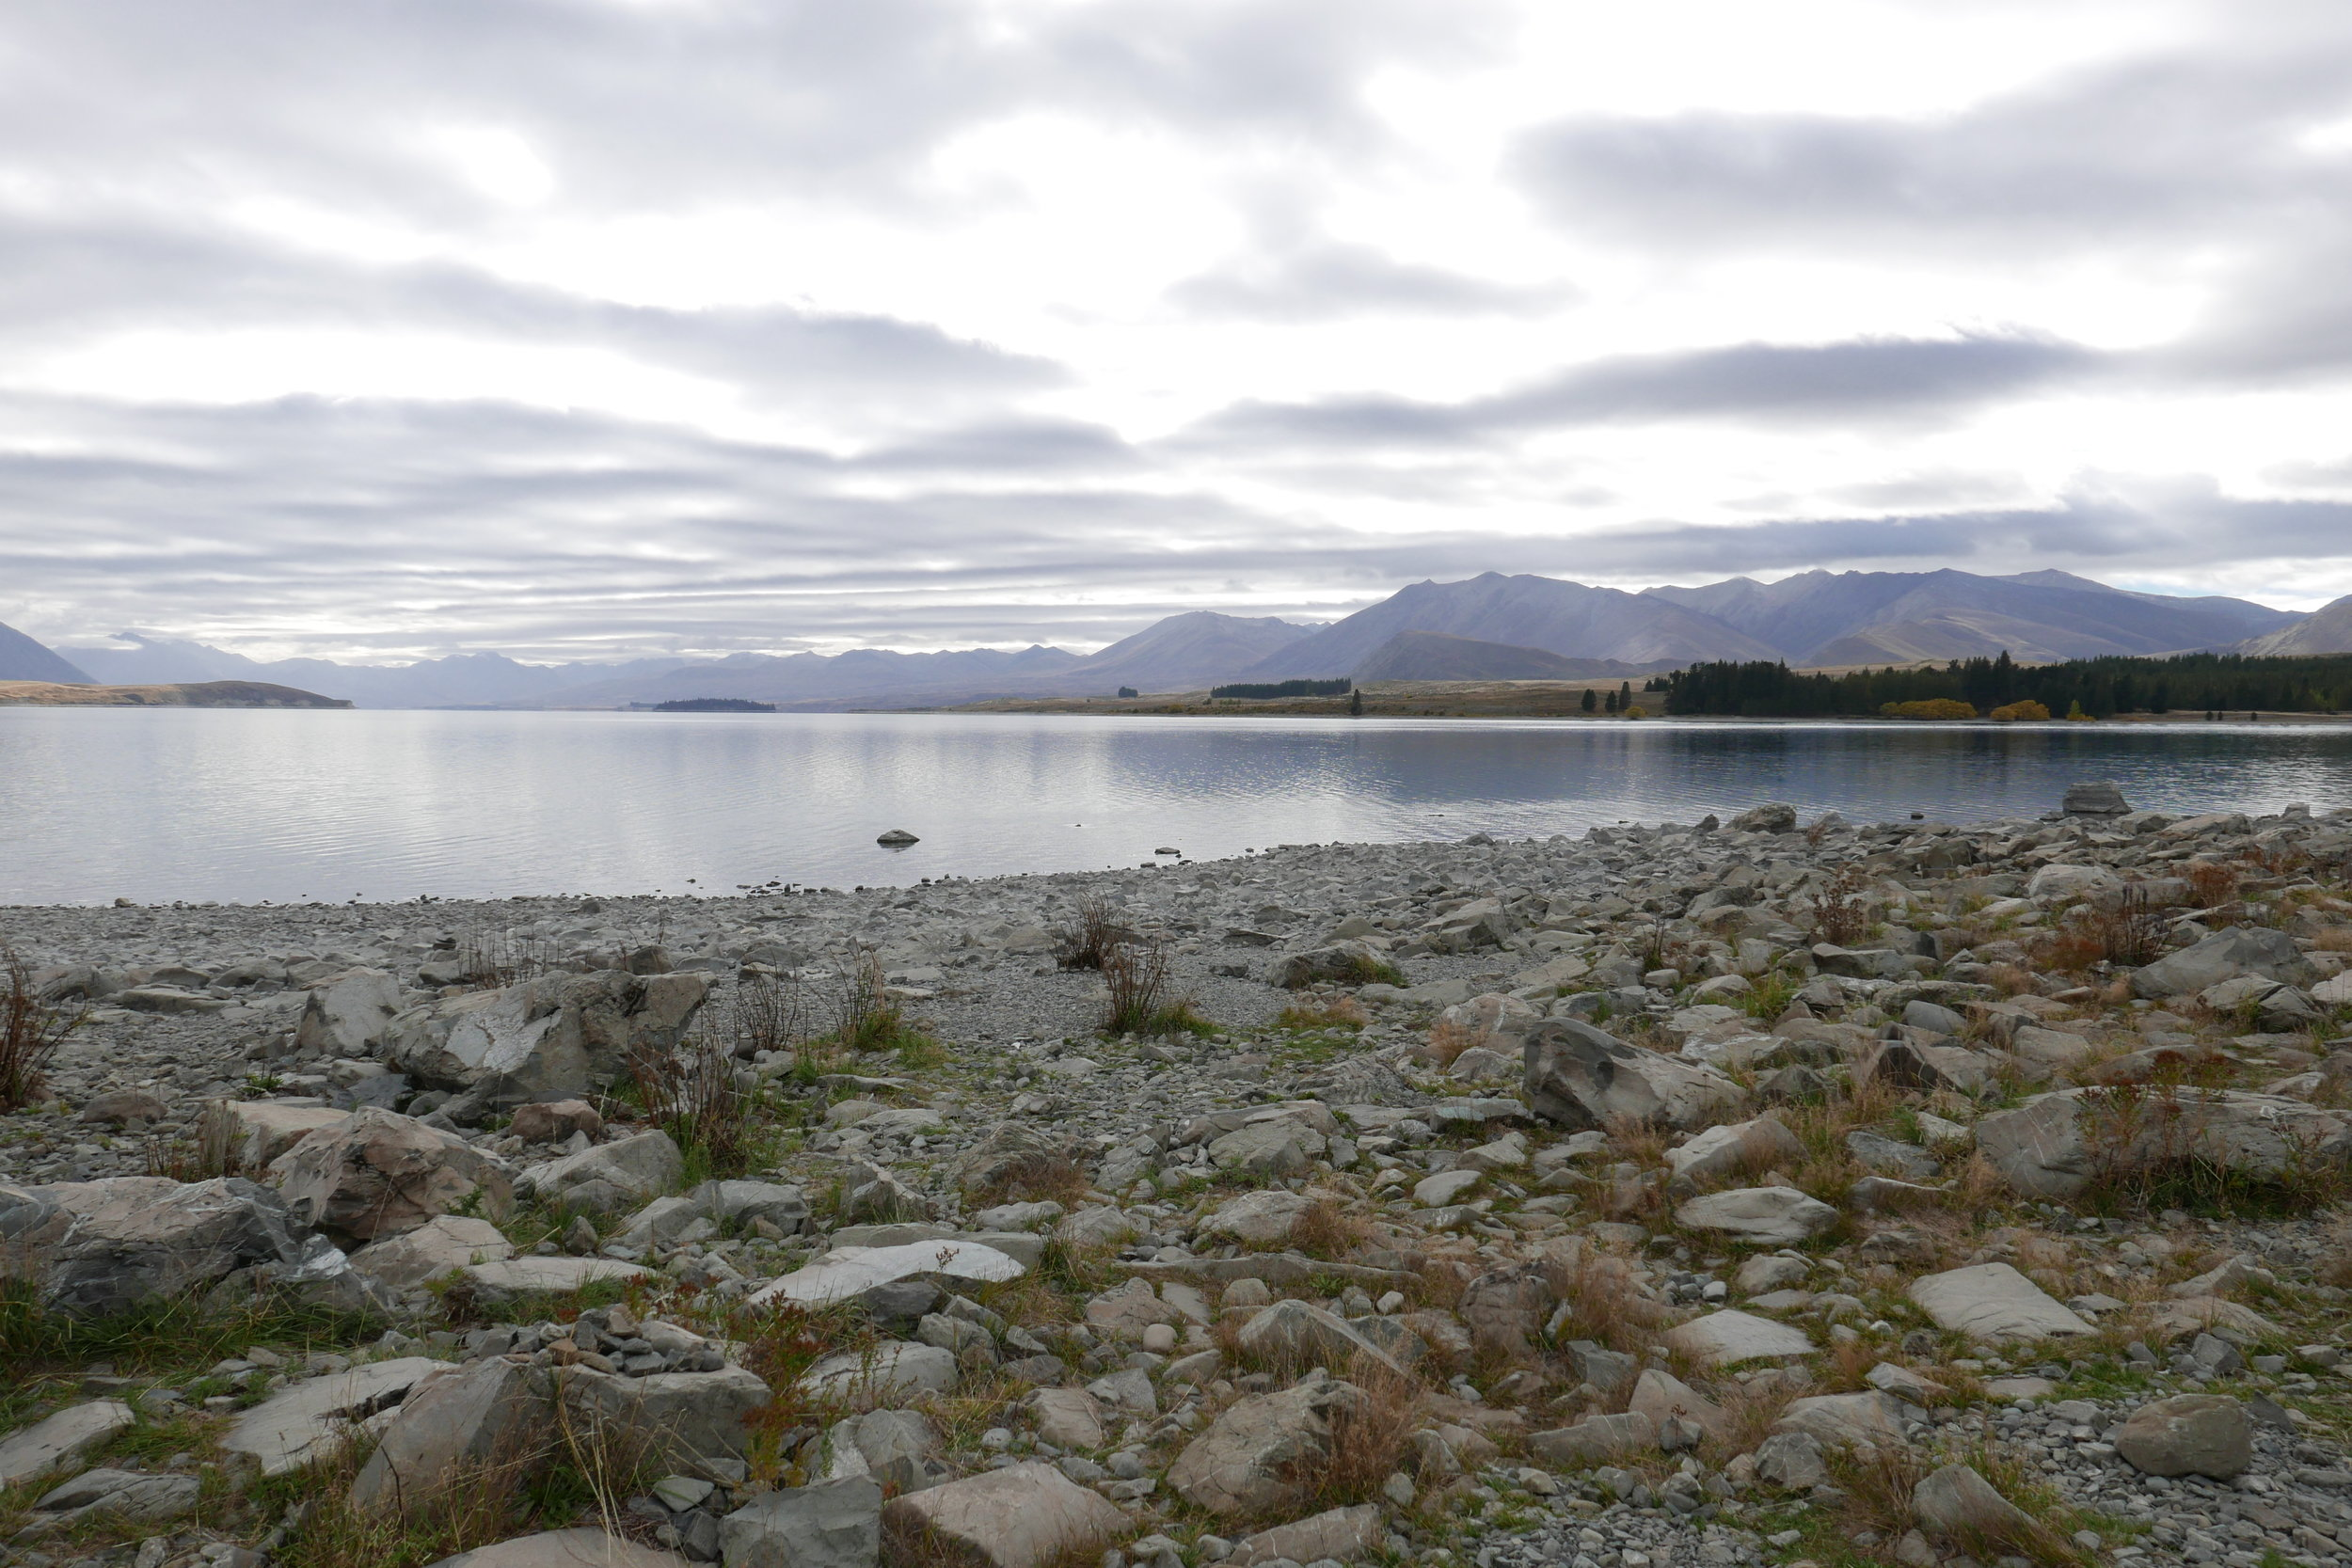 Lake Tekapo , as you can see we are here alone without fifty other people...